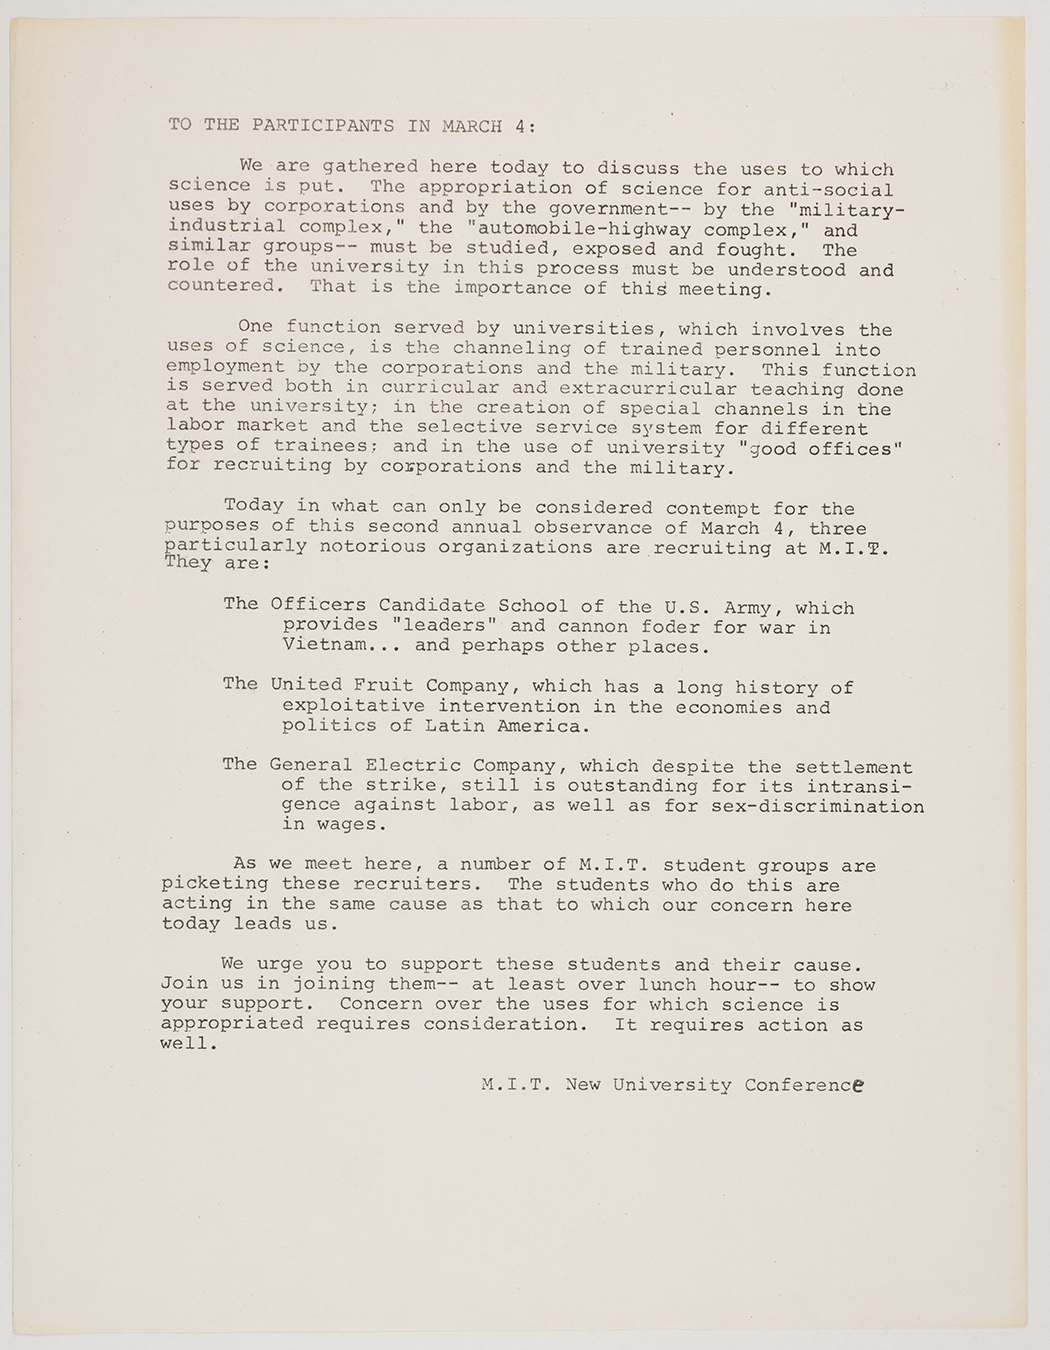 Letter from MIT New University Conference to the participants in March 4, 1969, AC-0349.